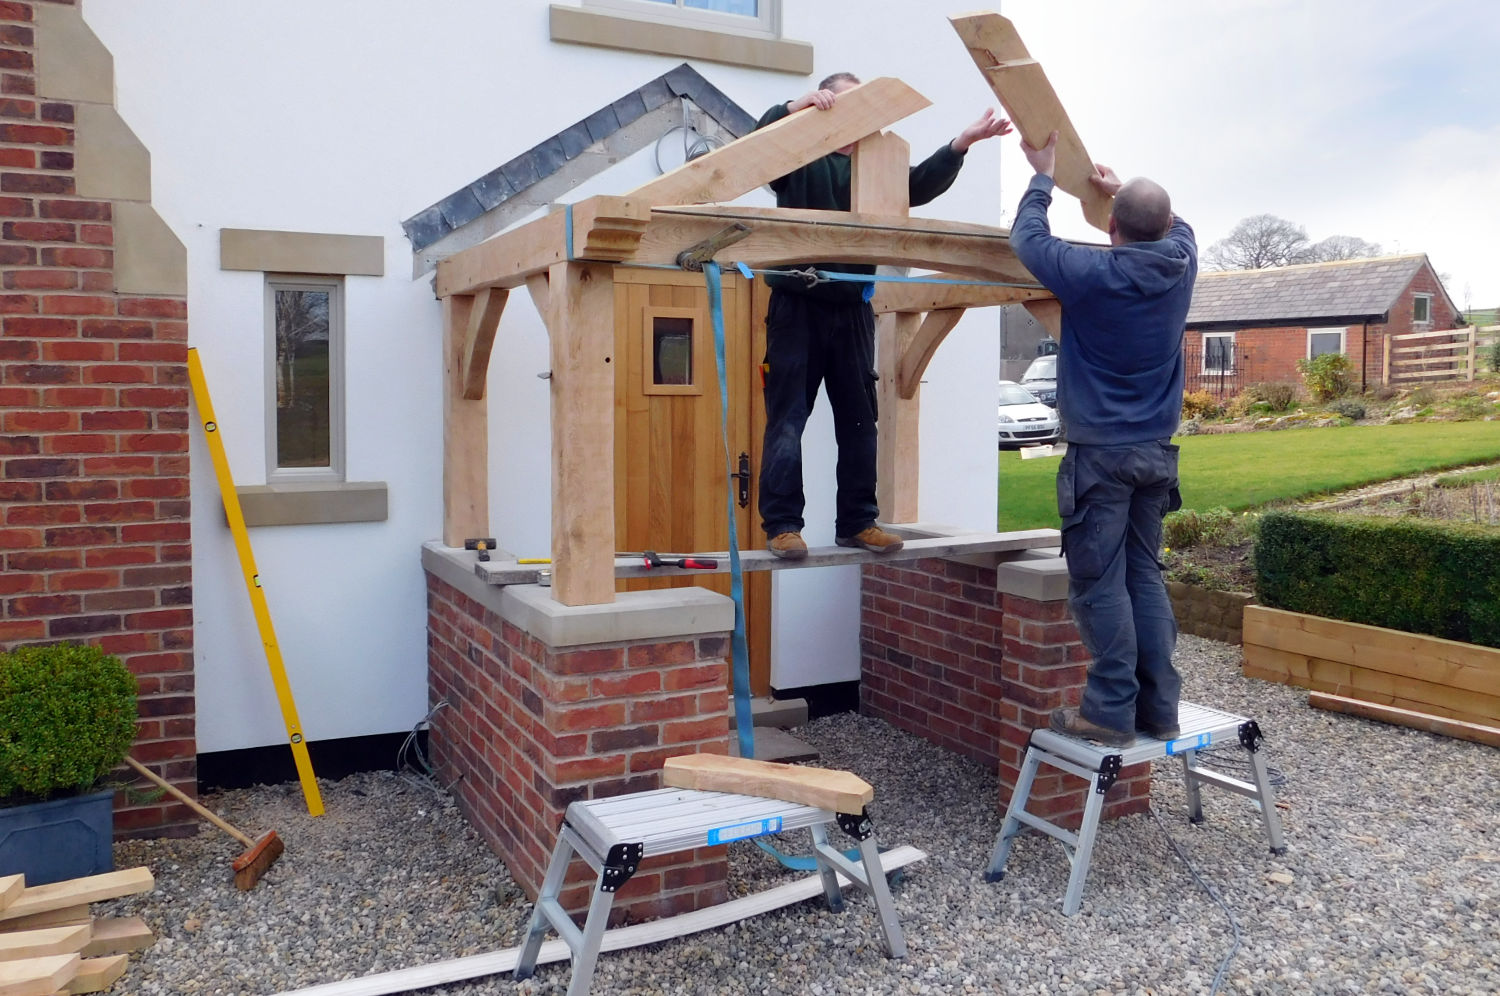 Oak Porch, slate roof, traditional hand made frame, beams, brick and stone work, home improvement, Preston, Lancs, NW